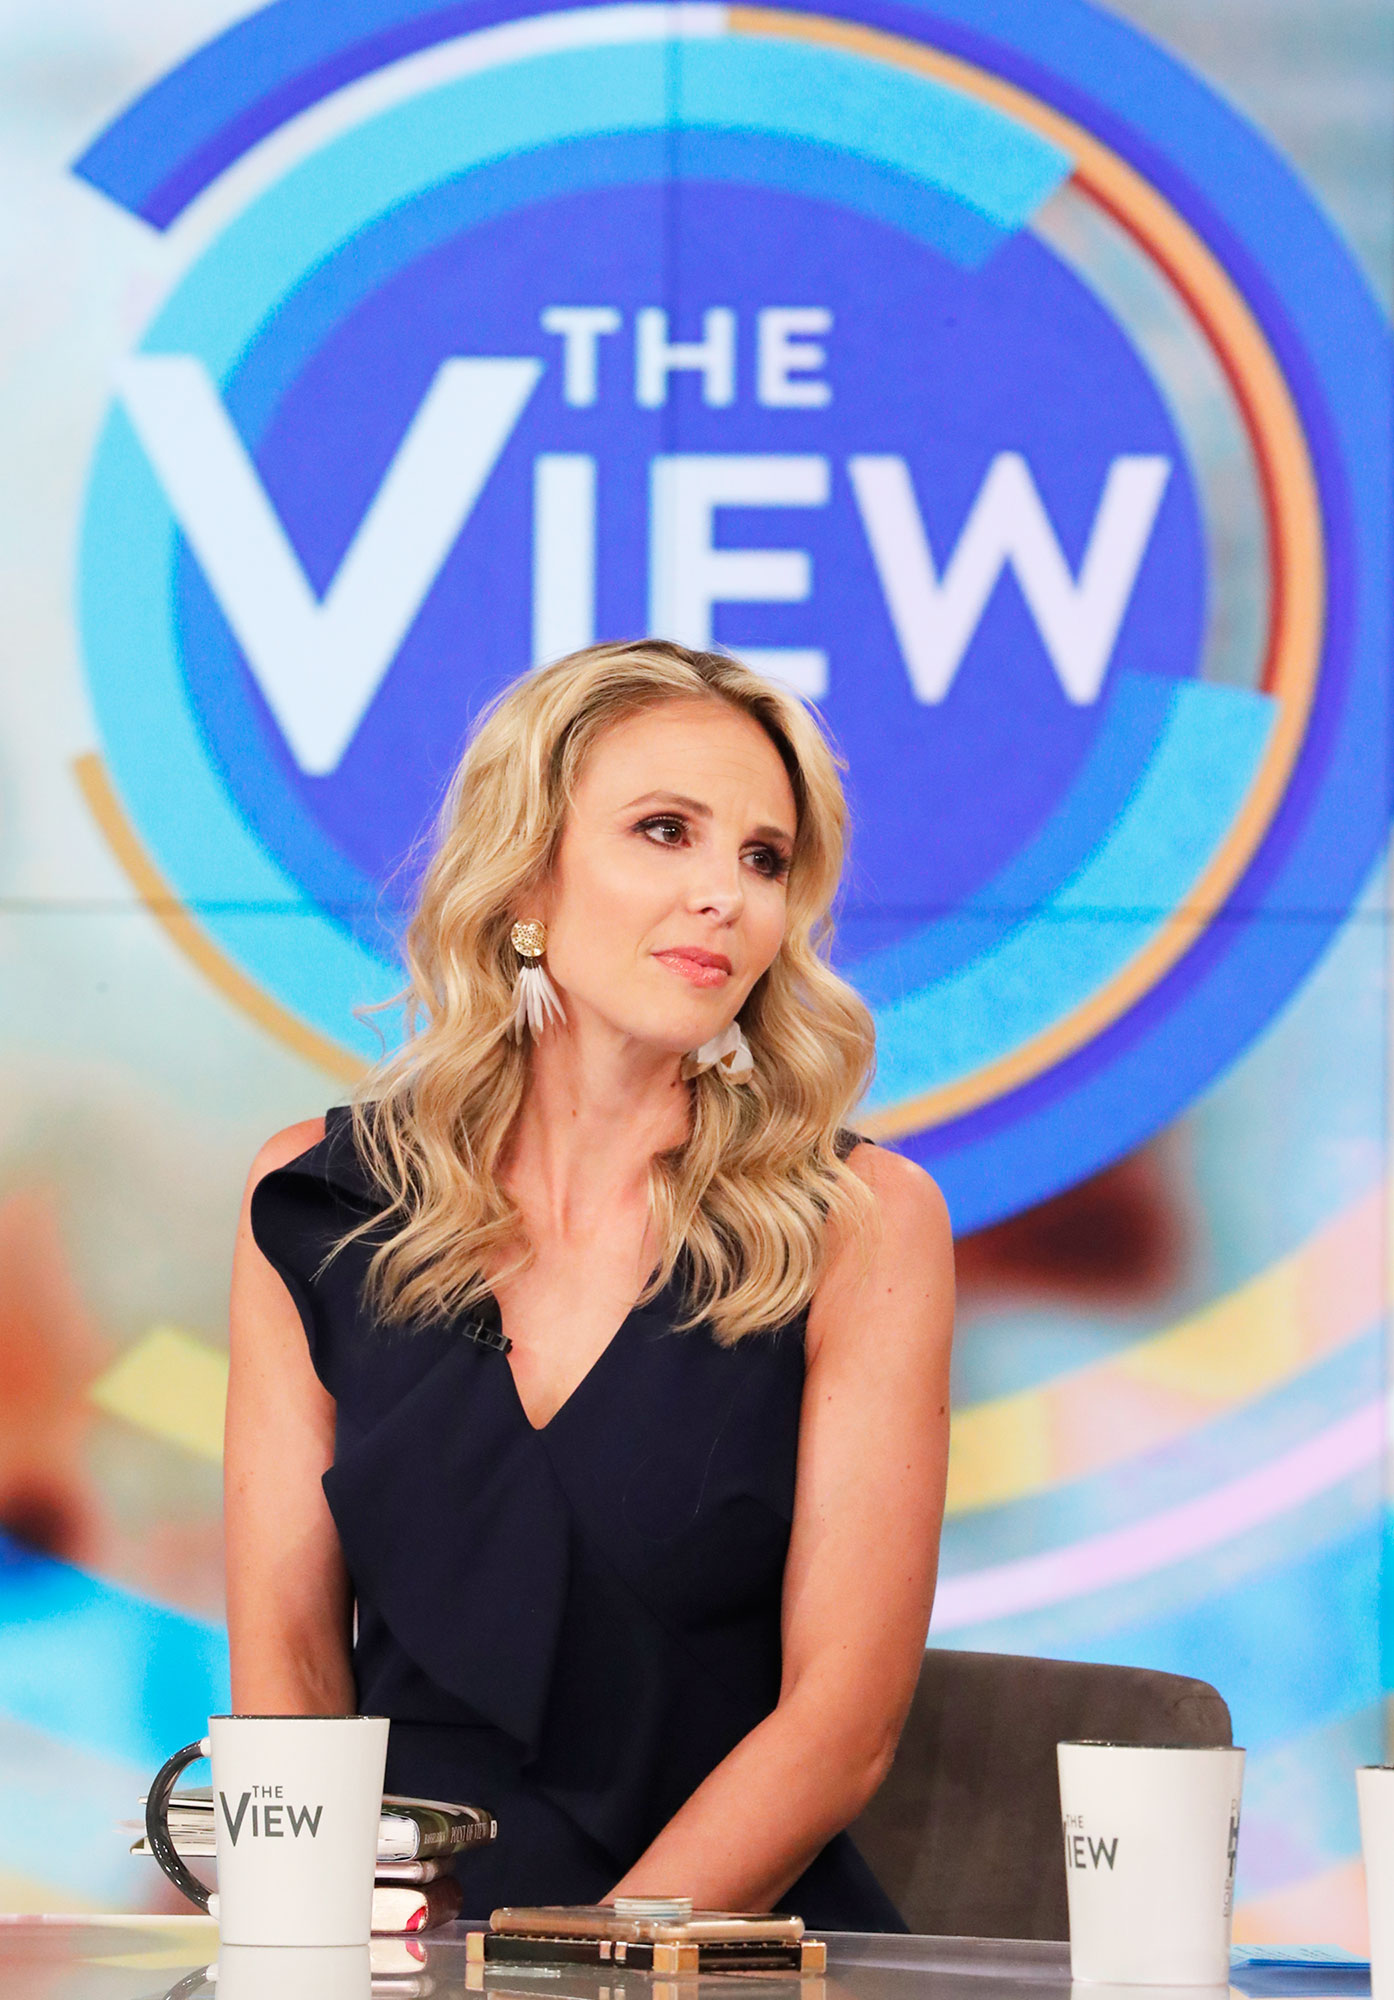 Elisabeth Hasselbeck She's 'Too Old'! Feuds, Friendships and More Shocking Revelations from 'The View' Tell-All - Elisabeth Hasselbeck , who was on the show from 2003 to 2013, threatened to quit often.